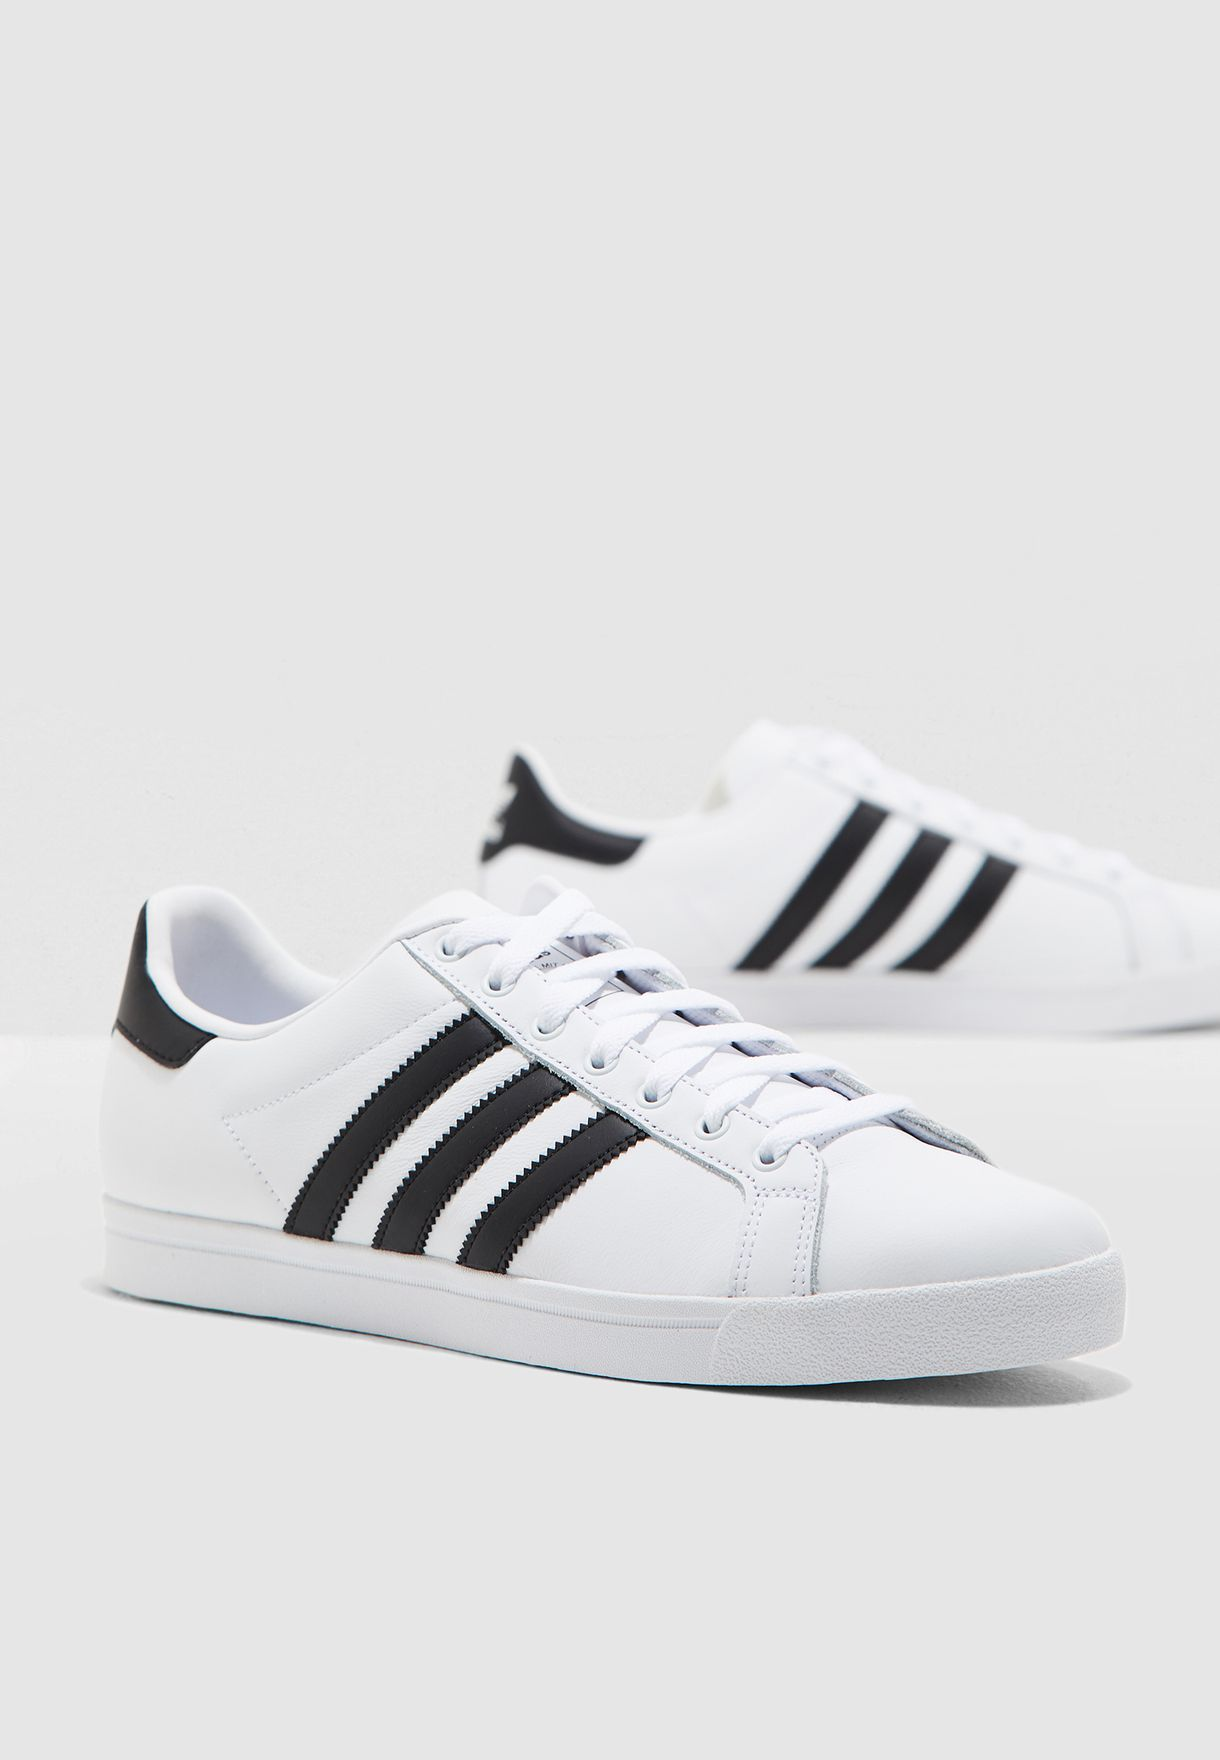 adidas Originals COAST STAR Black White Fast delivery